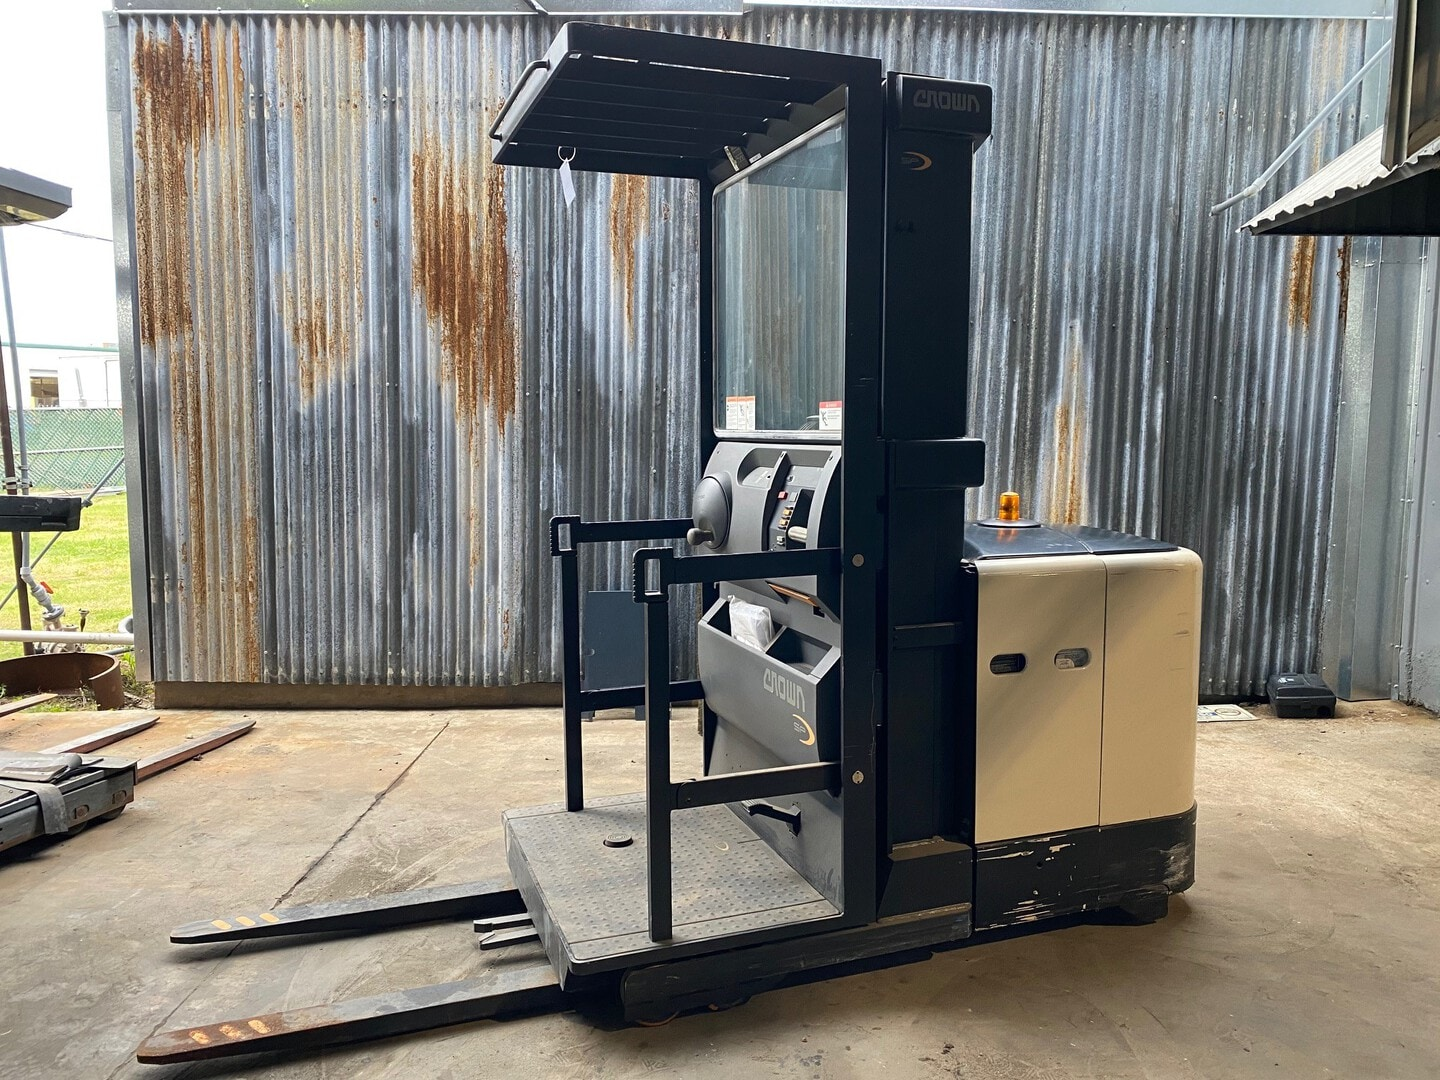 Used, 2007, Crown, SP3410-30, Forklifts / Lift Trucks